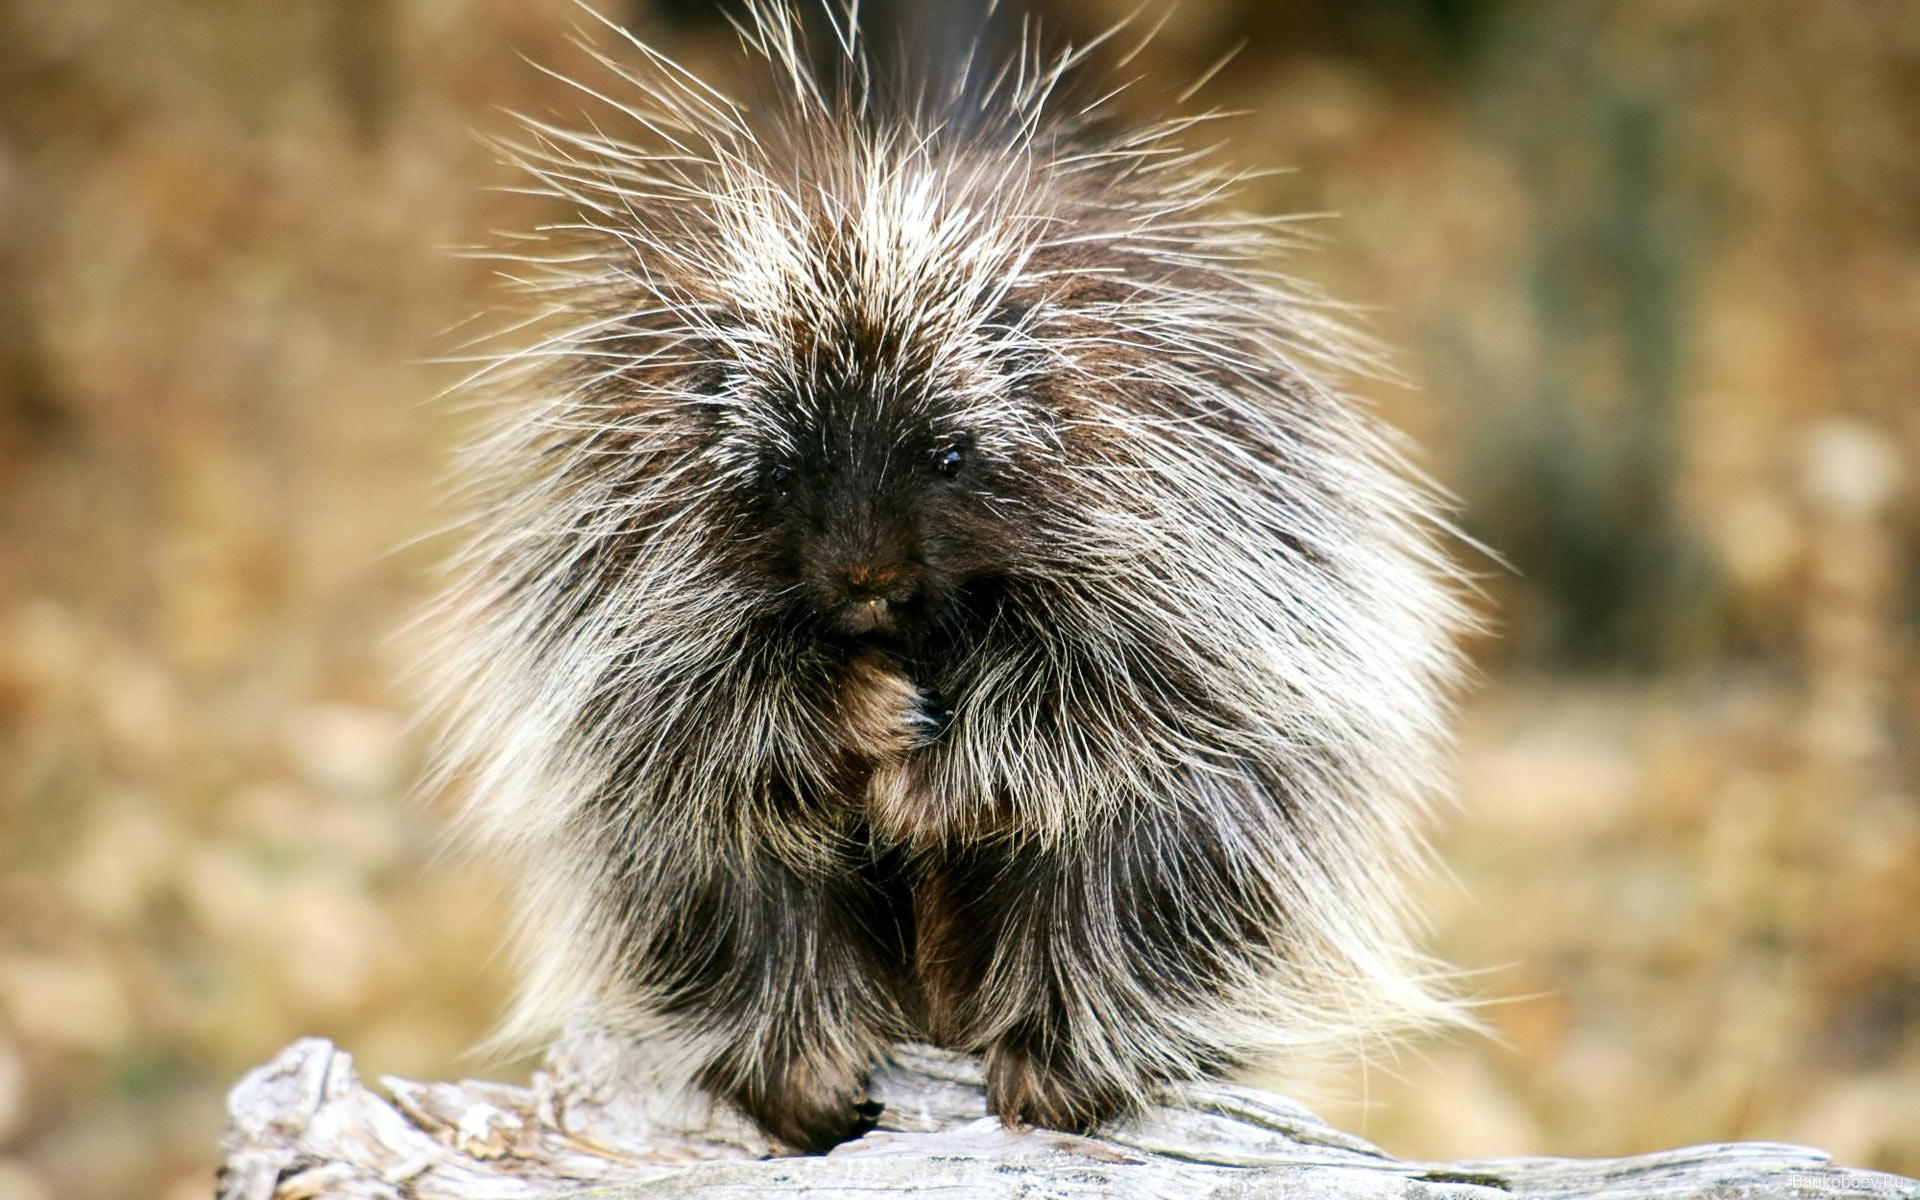 Baby Porcupine Exotic Animals hd Wallpaper and make this wallpaper for 1920x1200